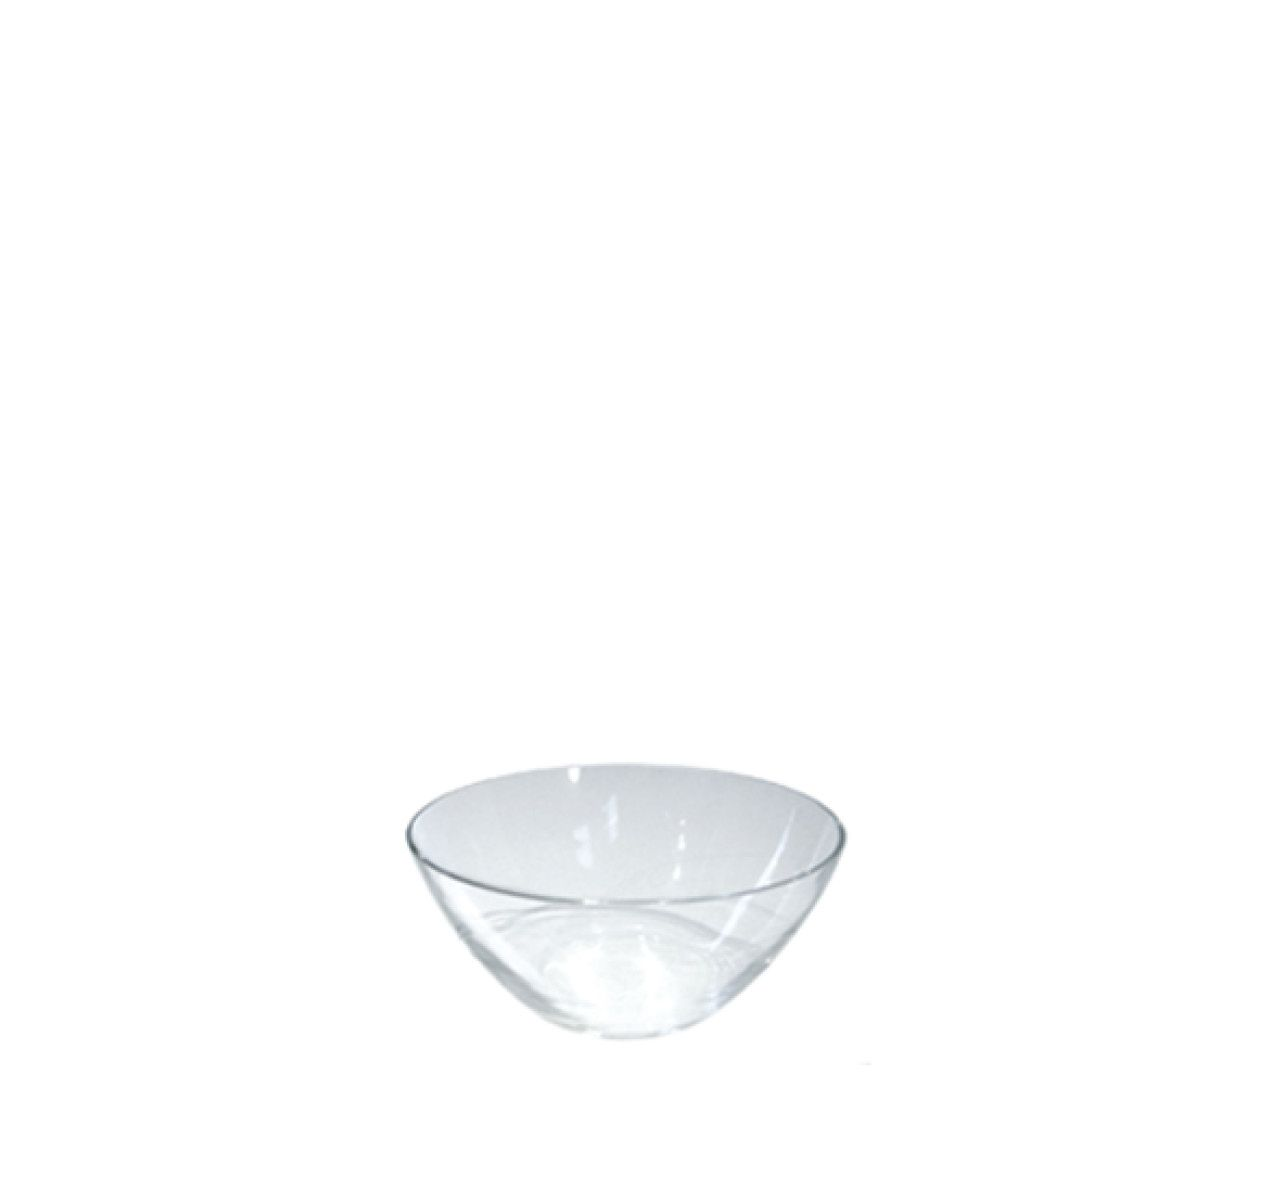 The White Snow Glass - Fruit Salad Bowl Set of 6 Glass